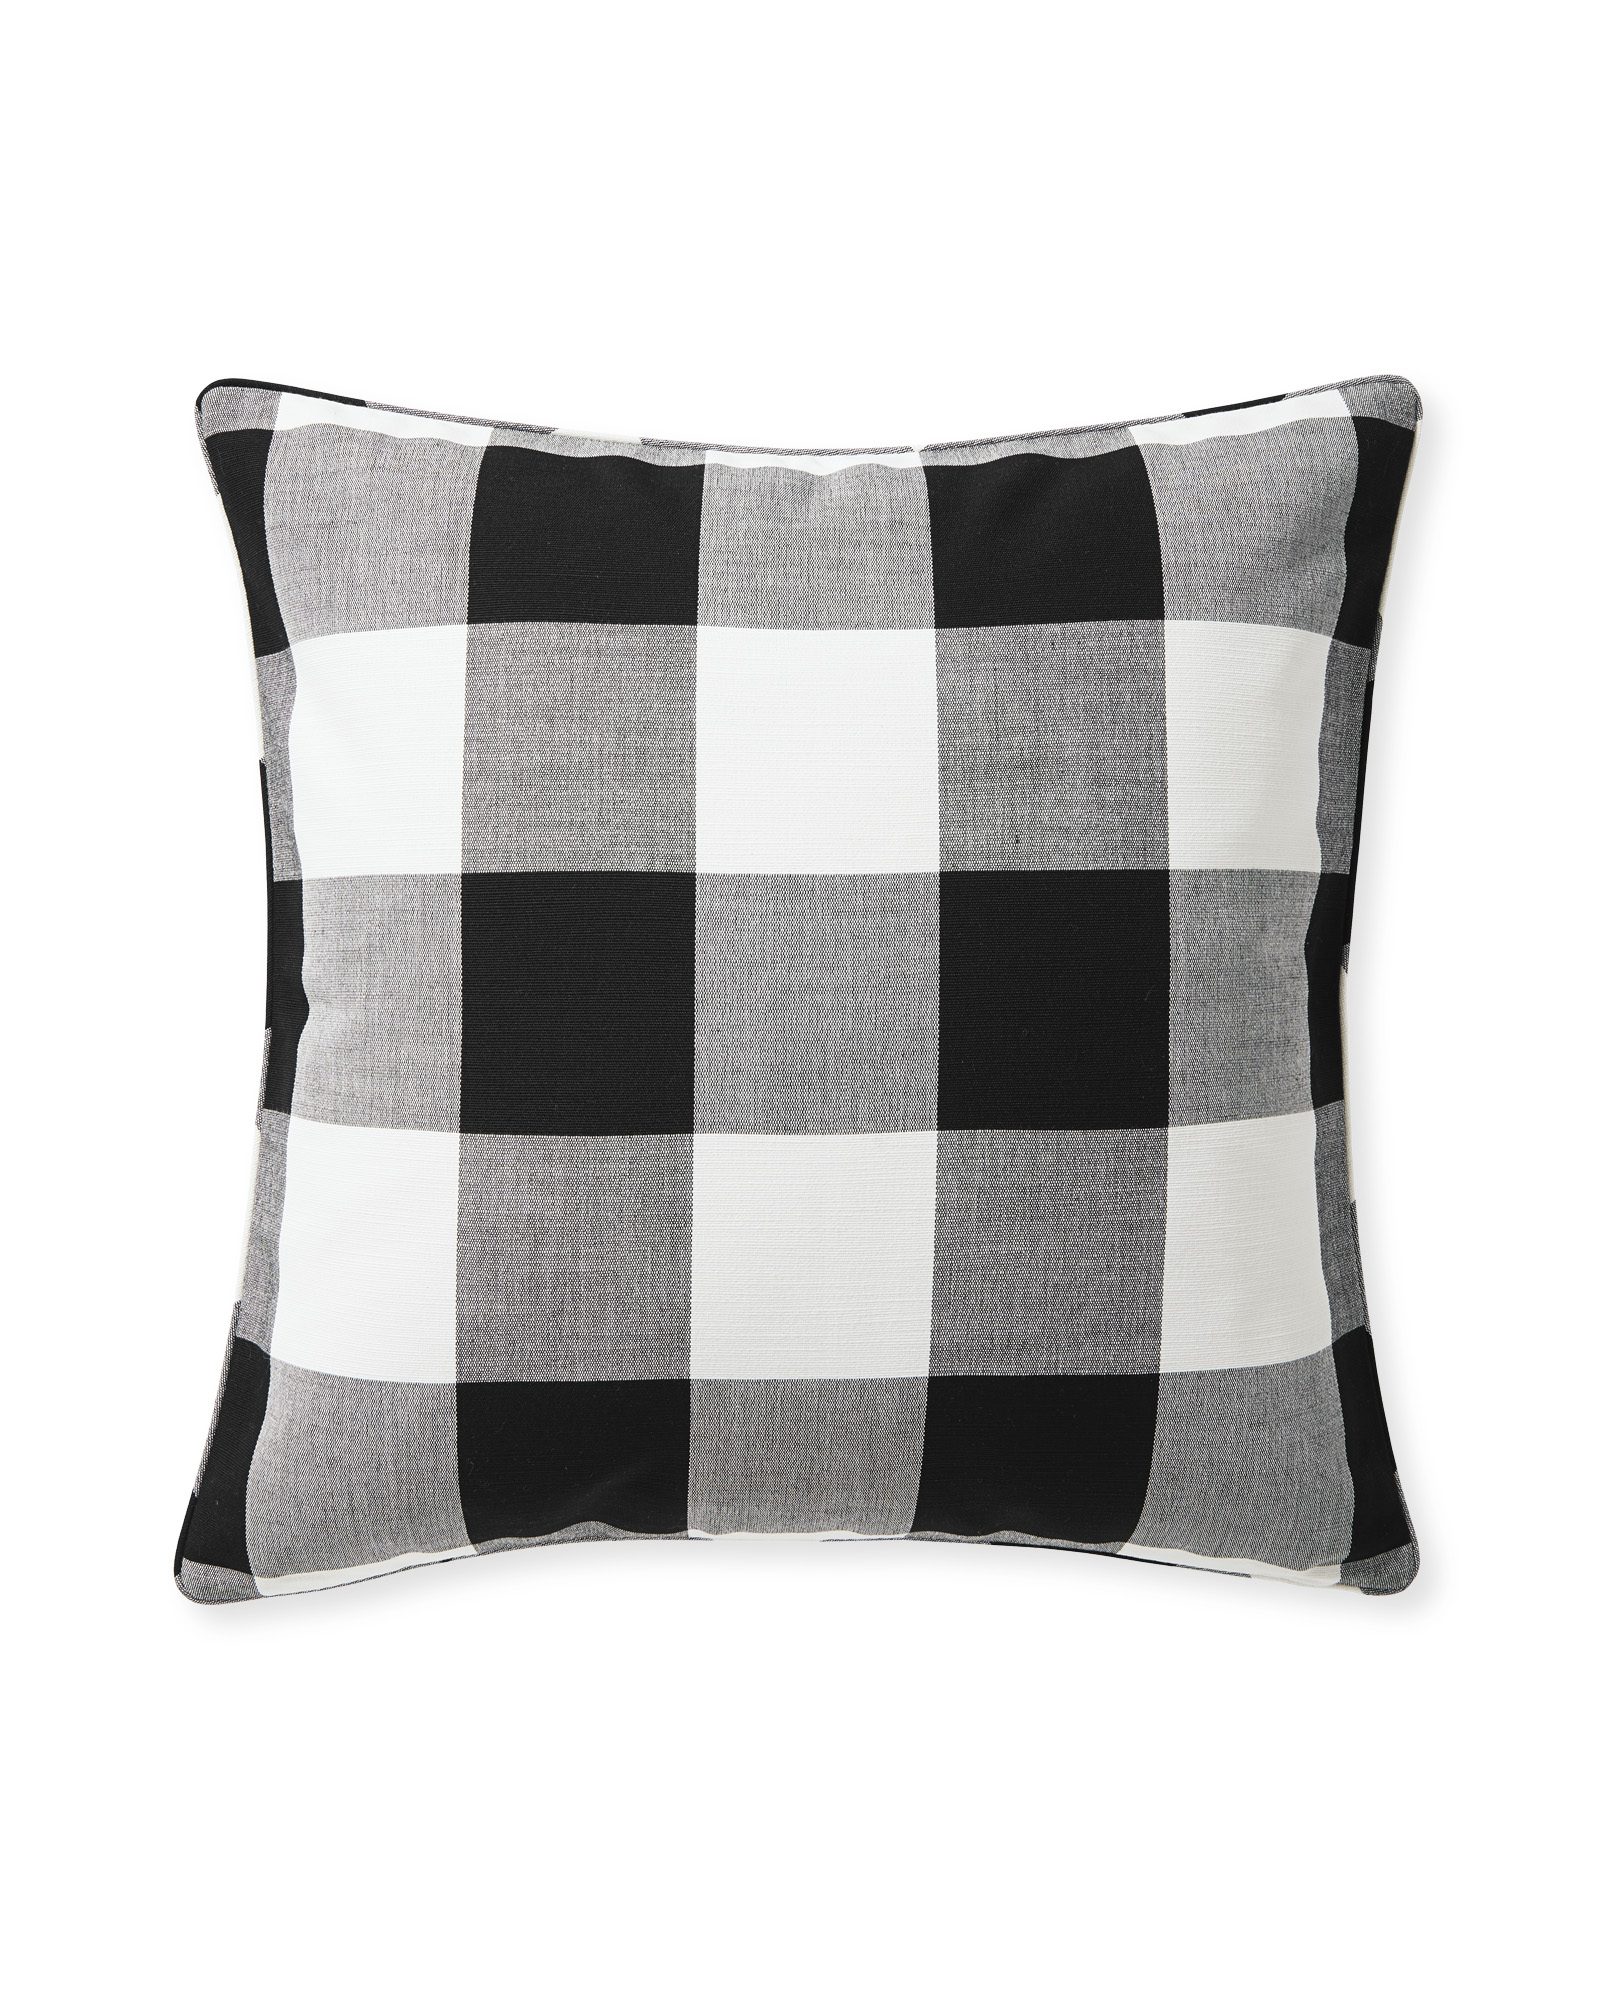 Perennials® Gingham Pillow Cover, Black